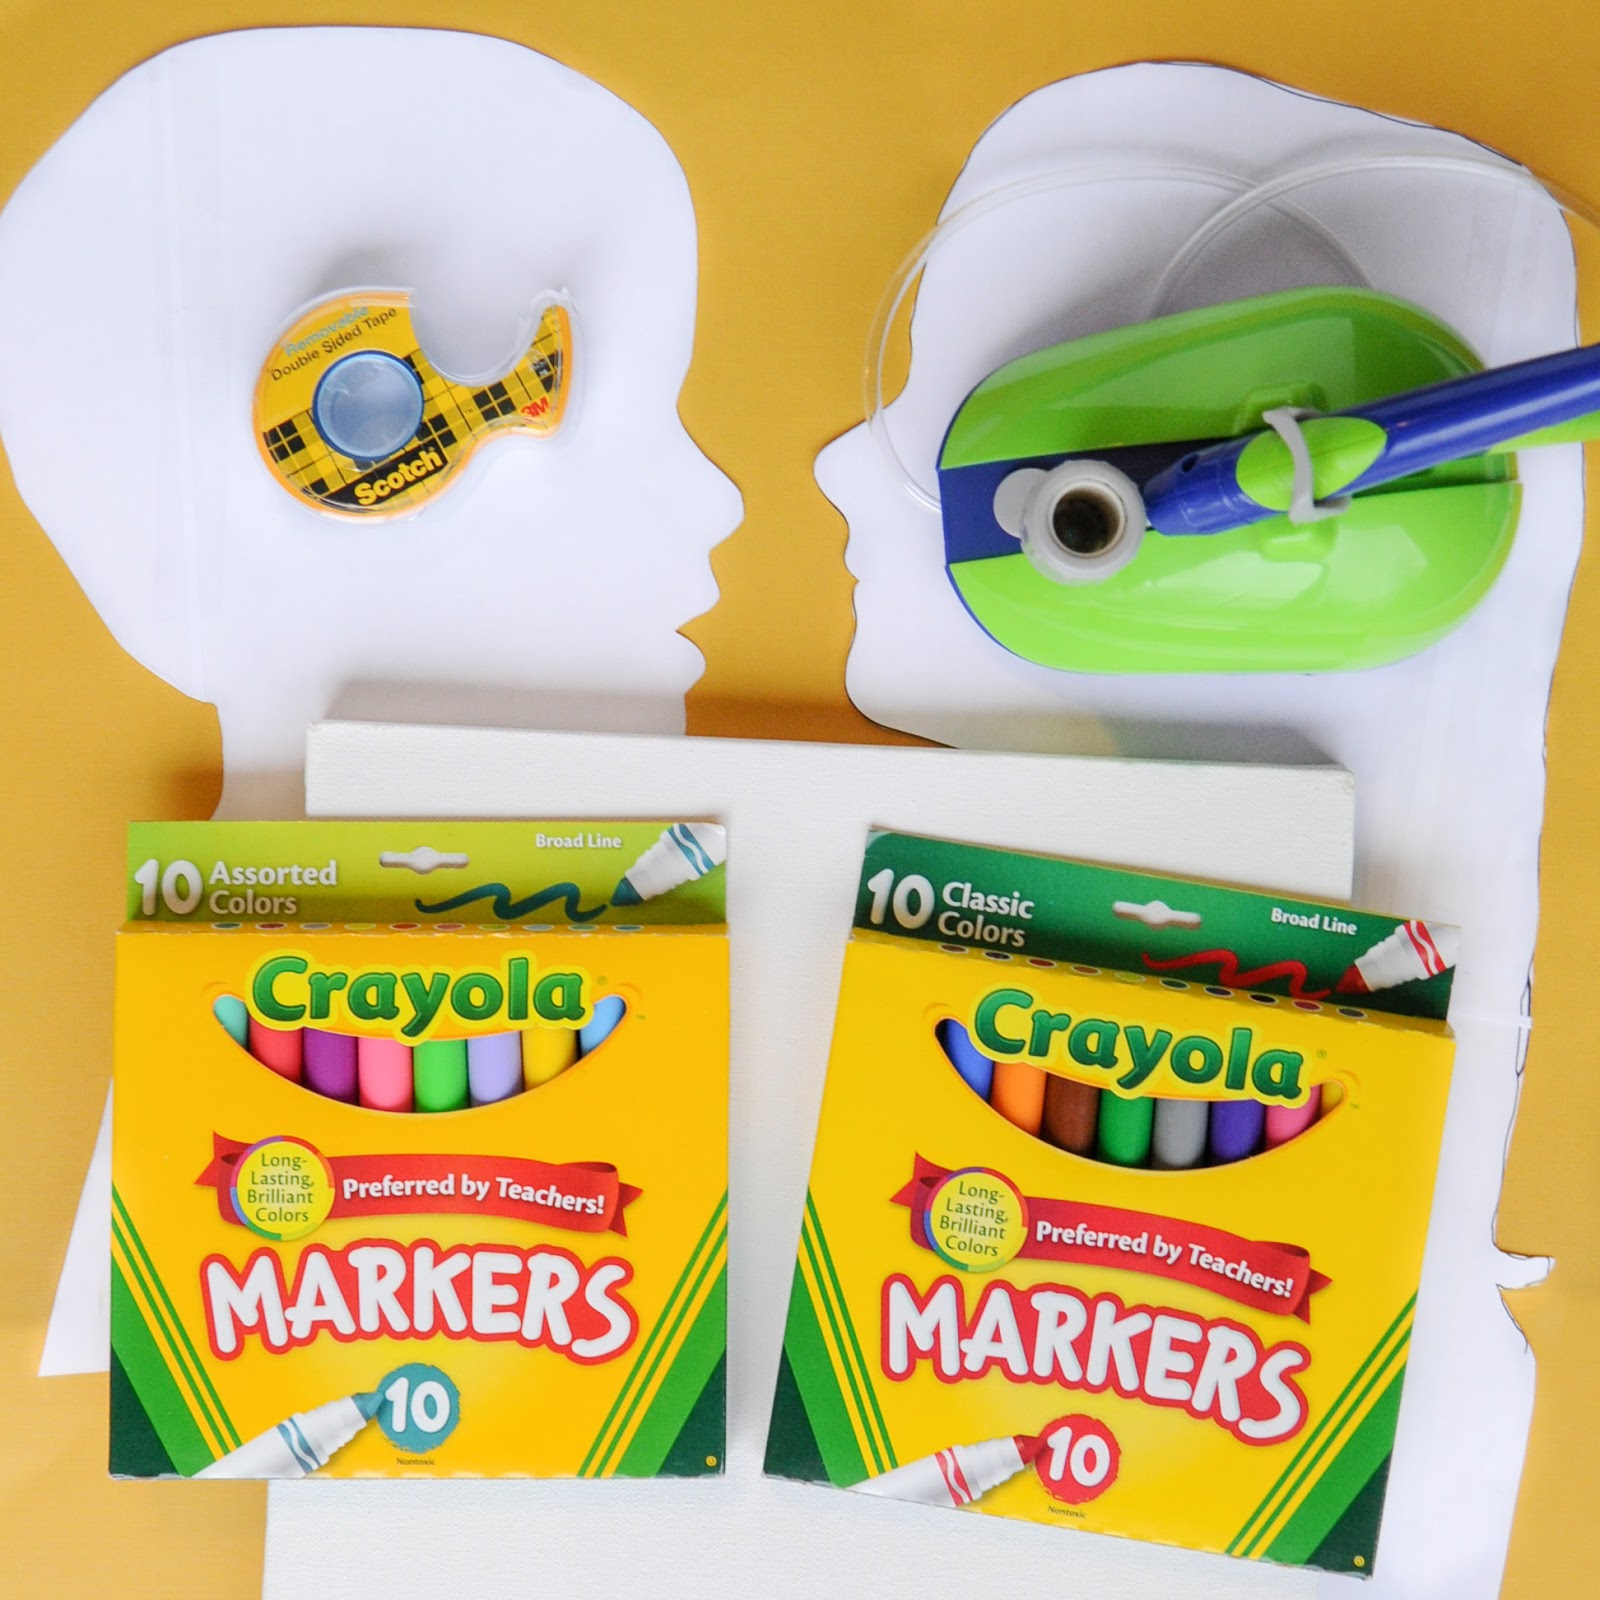 How To Make Silhouettes With The Crayola Air Marker Sprayer